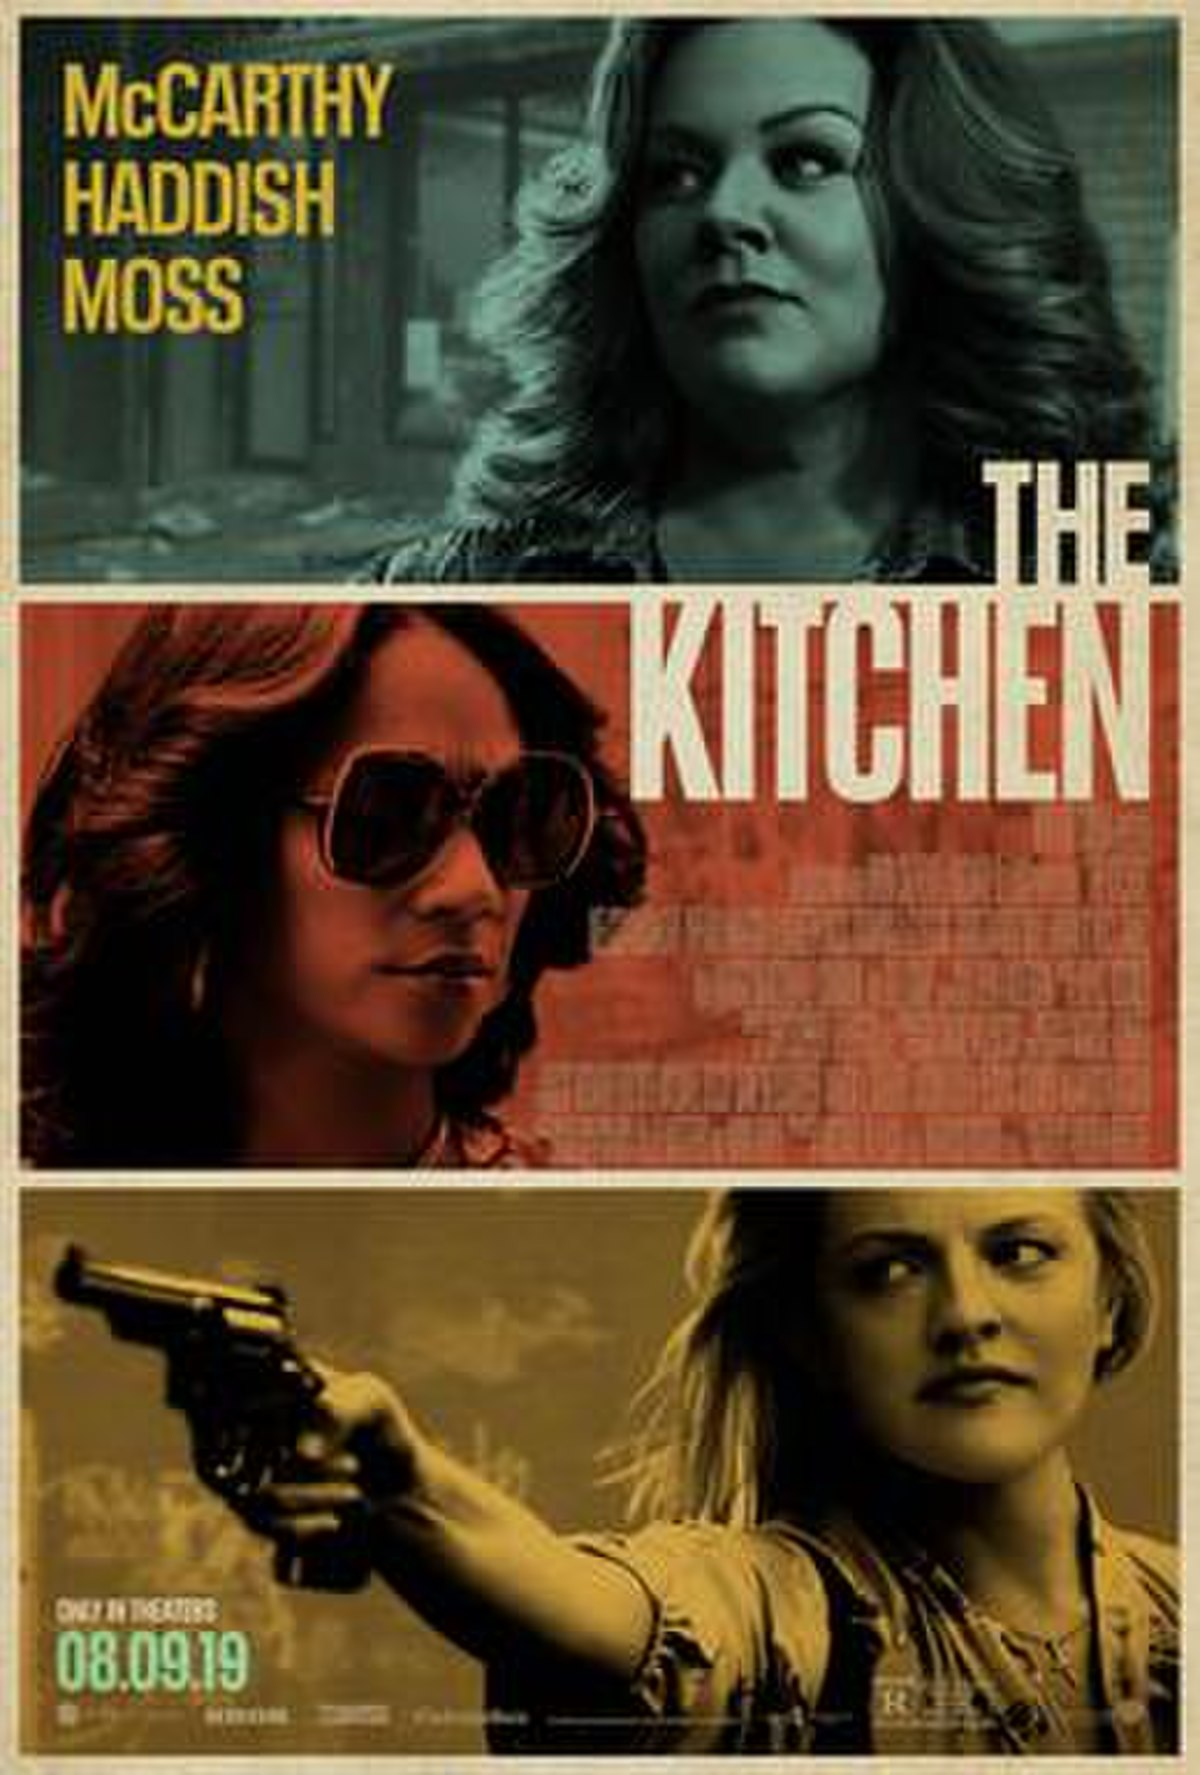 The Kitchen (2019) - Watch on HBO MAX, HBO, and Streaming